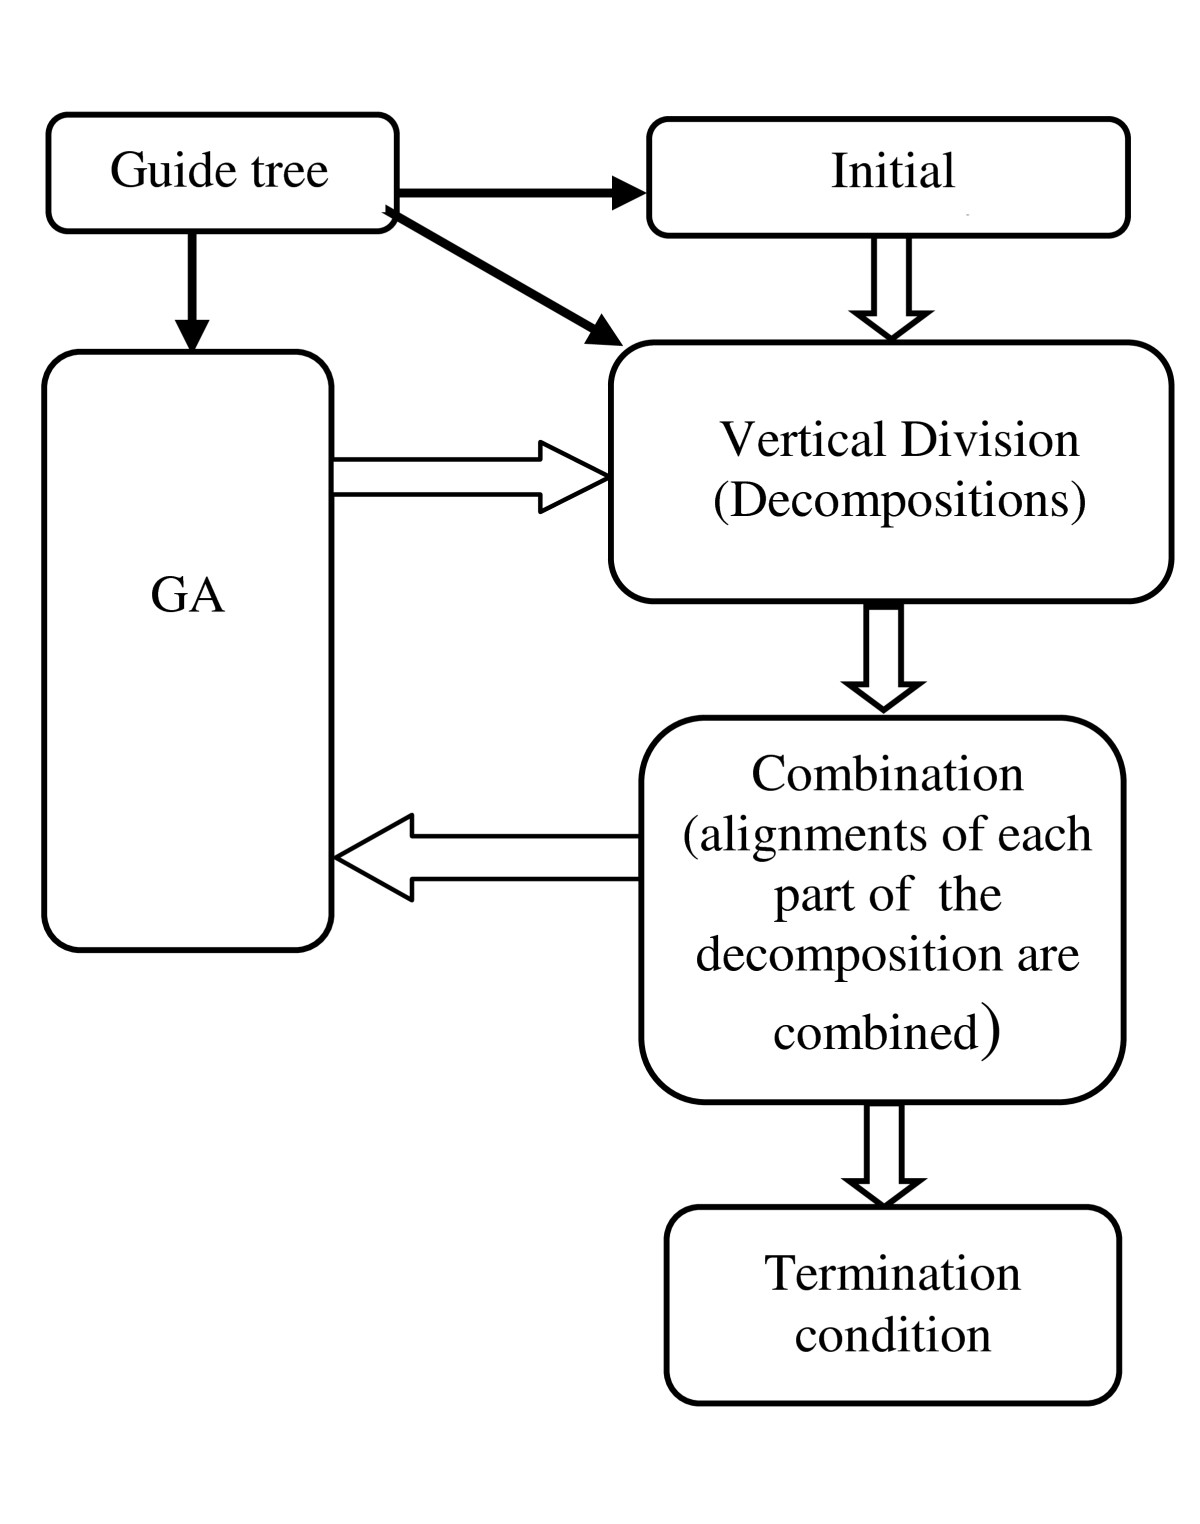 https://static-content.springer.com/image/art%3A10.1186%2F1471-2105-12-353/MediaObjects/12859_2011_Article_4782_Fig1_HTML.jpg